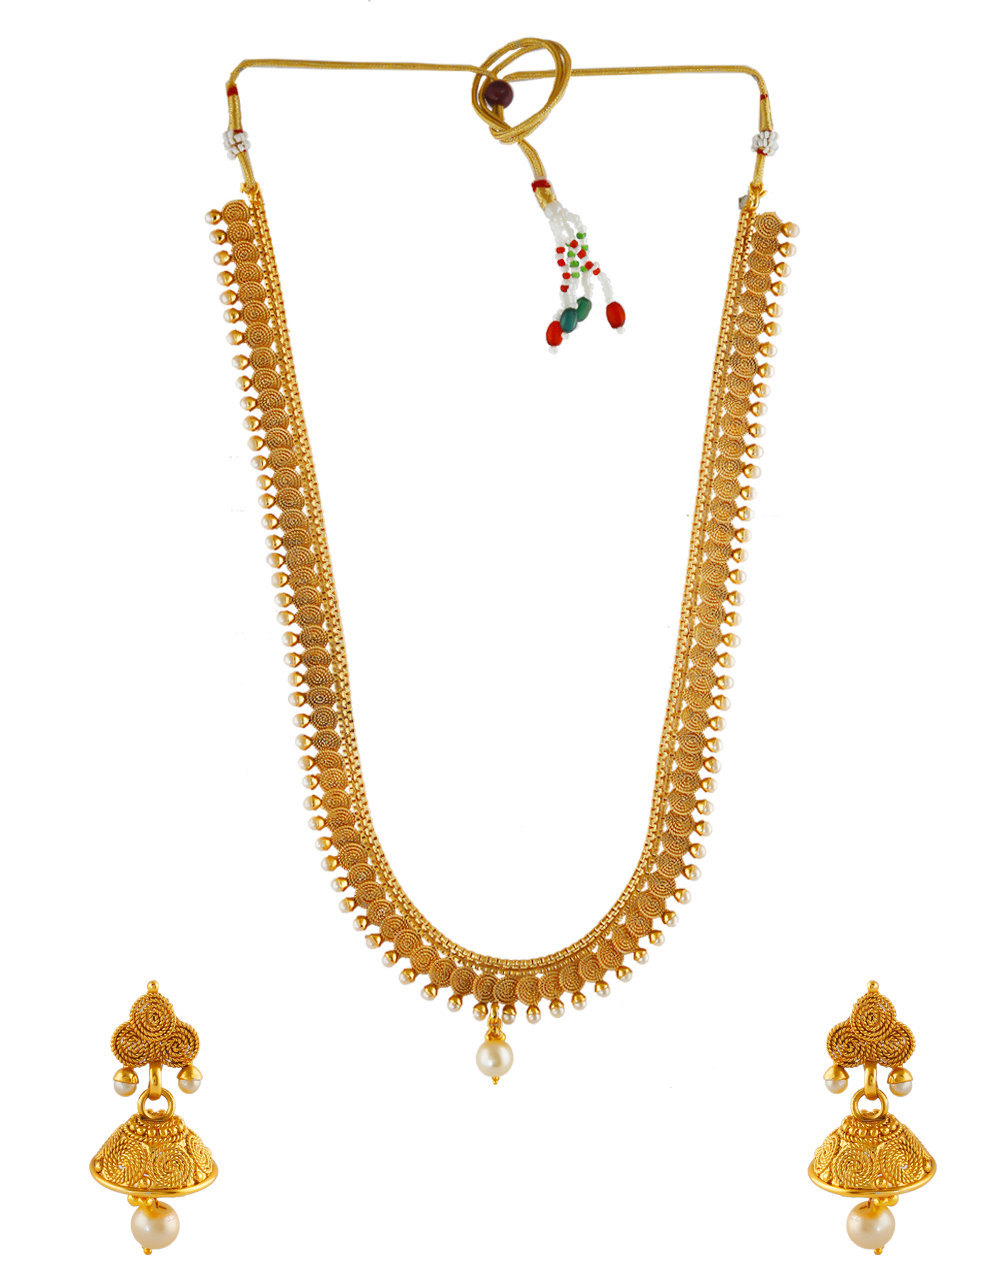 Beautiful Gold Finish Long Necklace Styled With Pearls Beads Jewellery